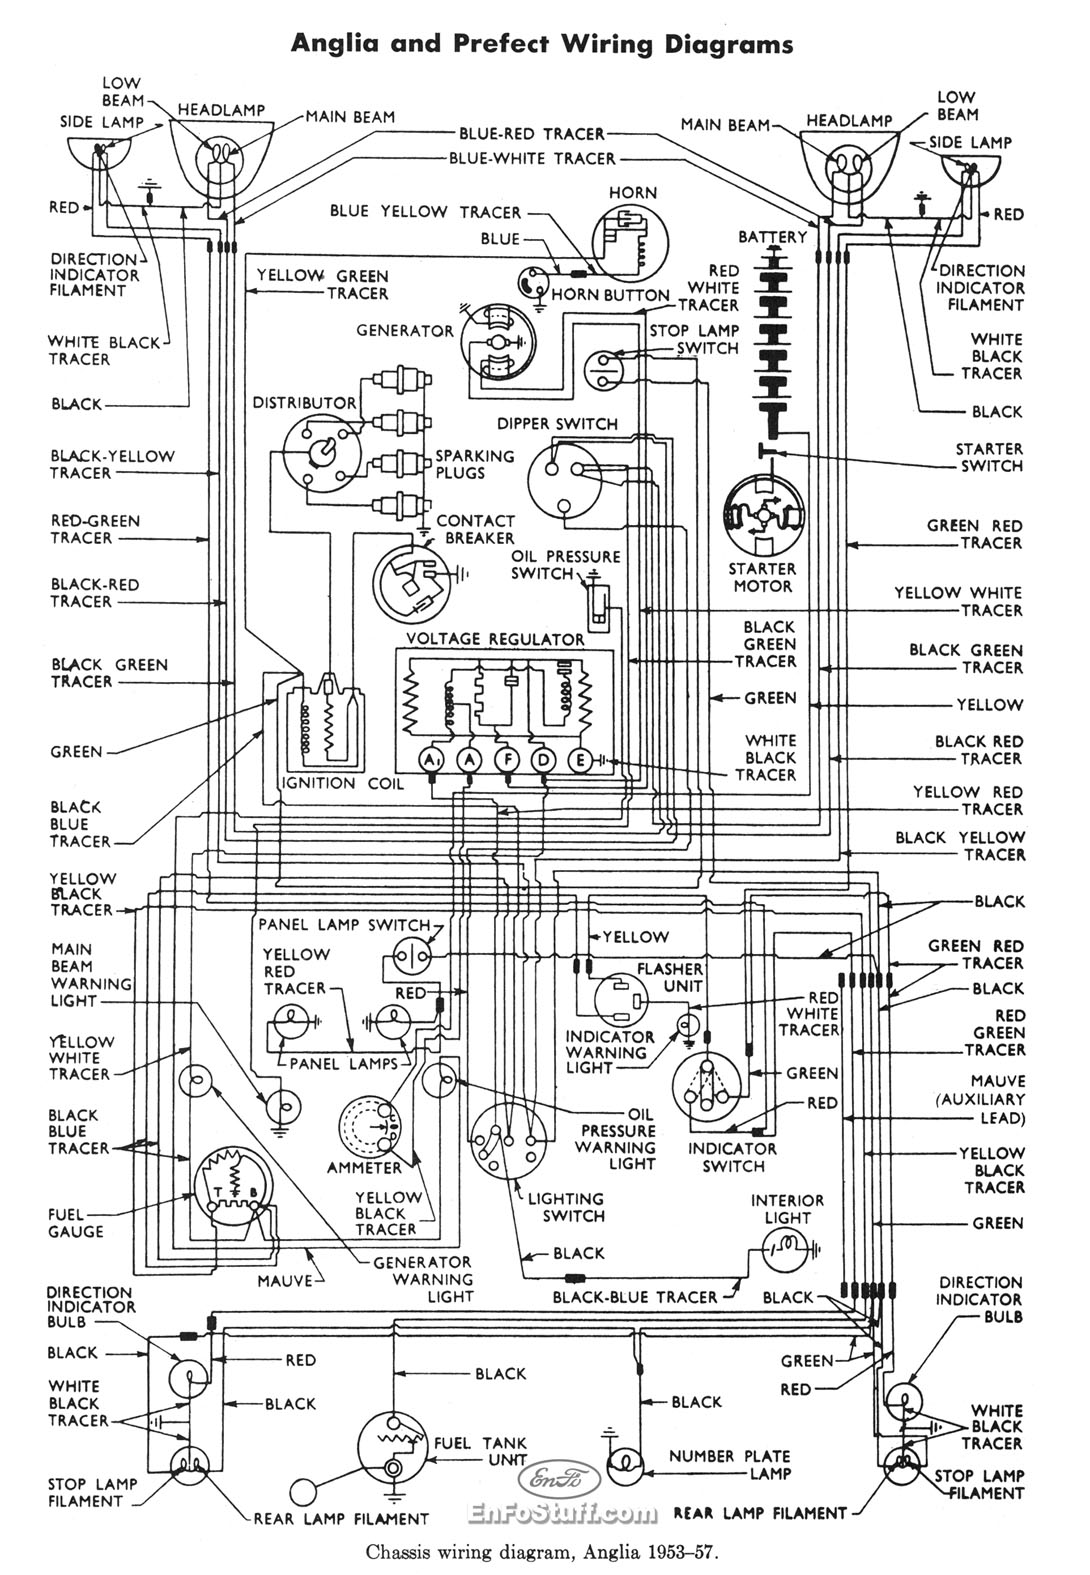 Wiring diagram for 1963 ford 2000 tractor